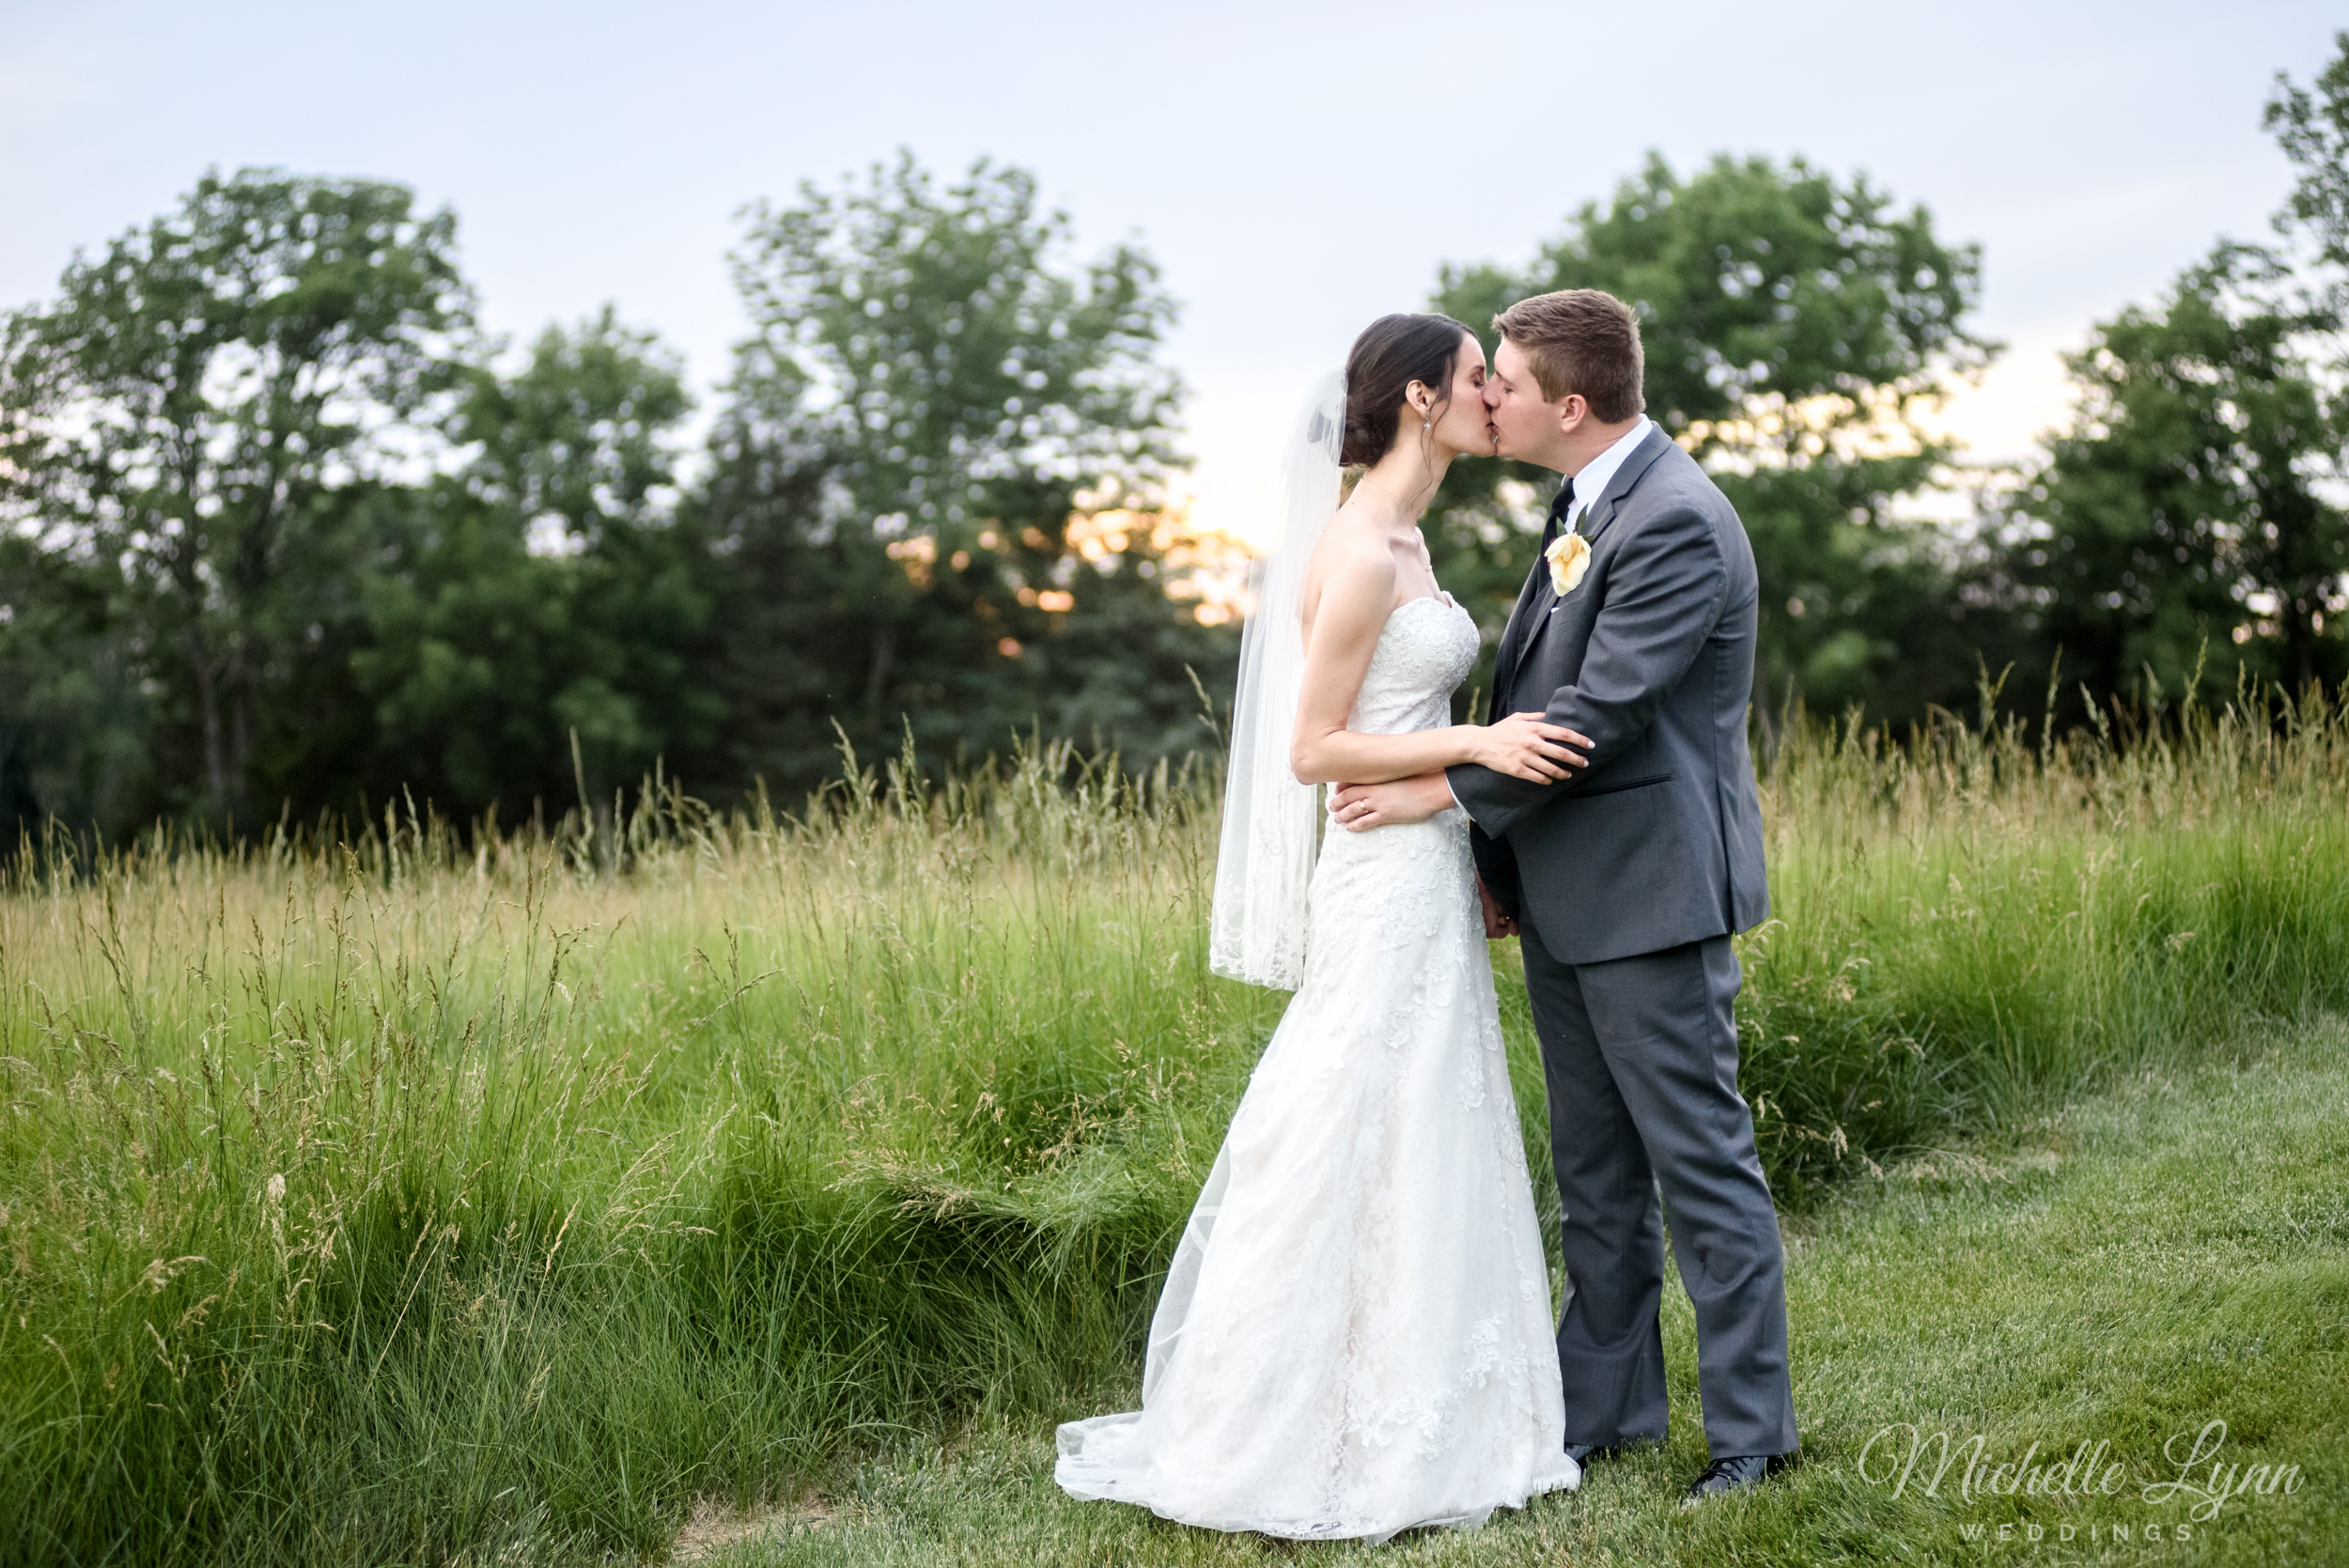 mlw-loft-at-sweet-water-country-club-wedding-photography-75.jpg